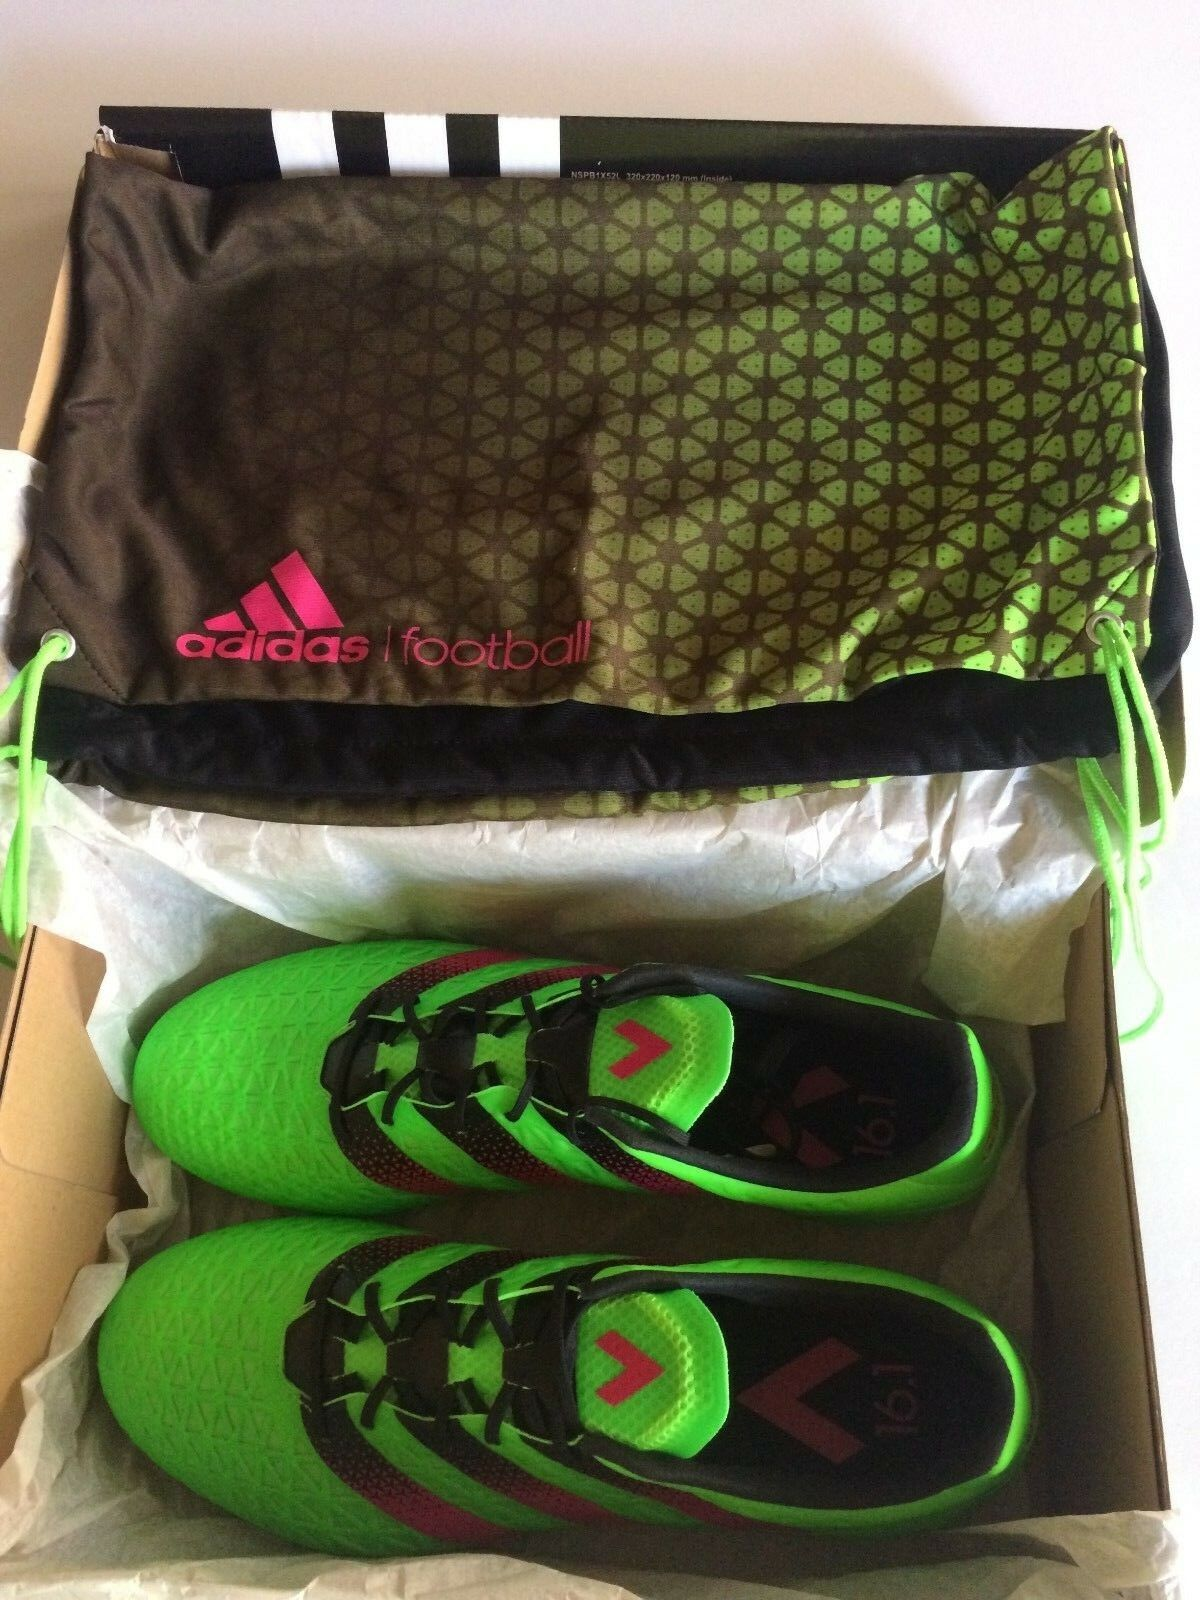 Adidas Uomo Ace 16.1 FG/AG Soccer Cleats  AF5083 with Bag